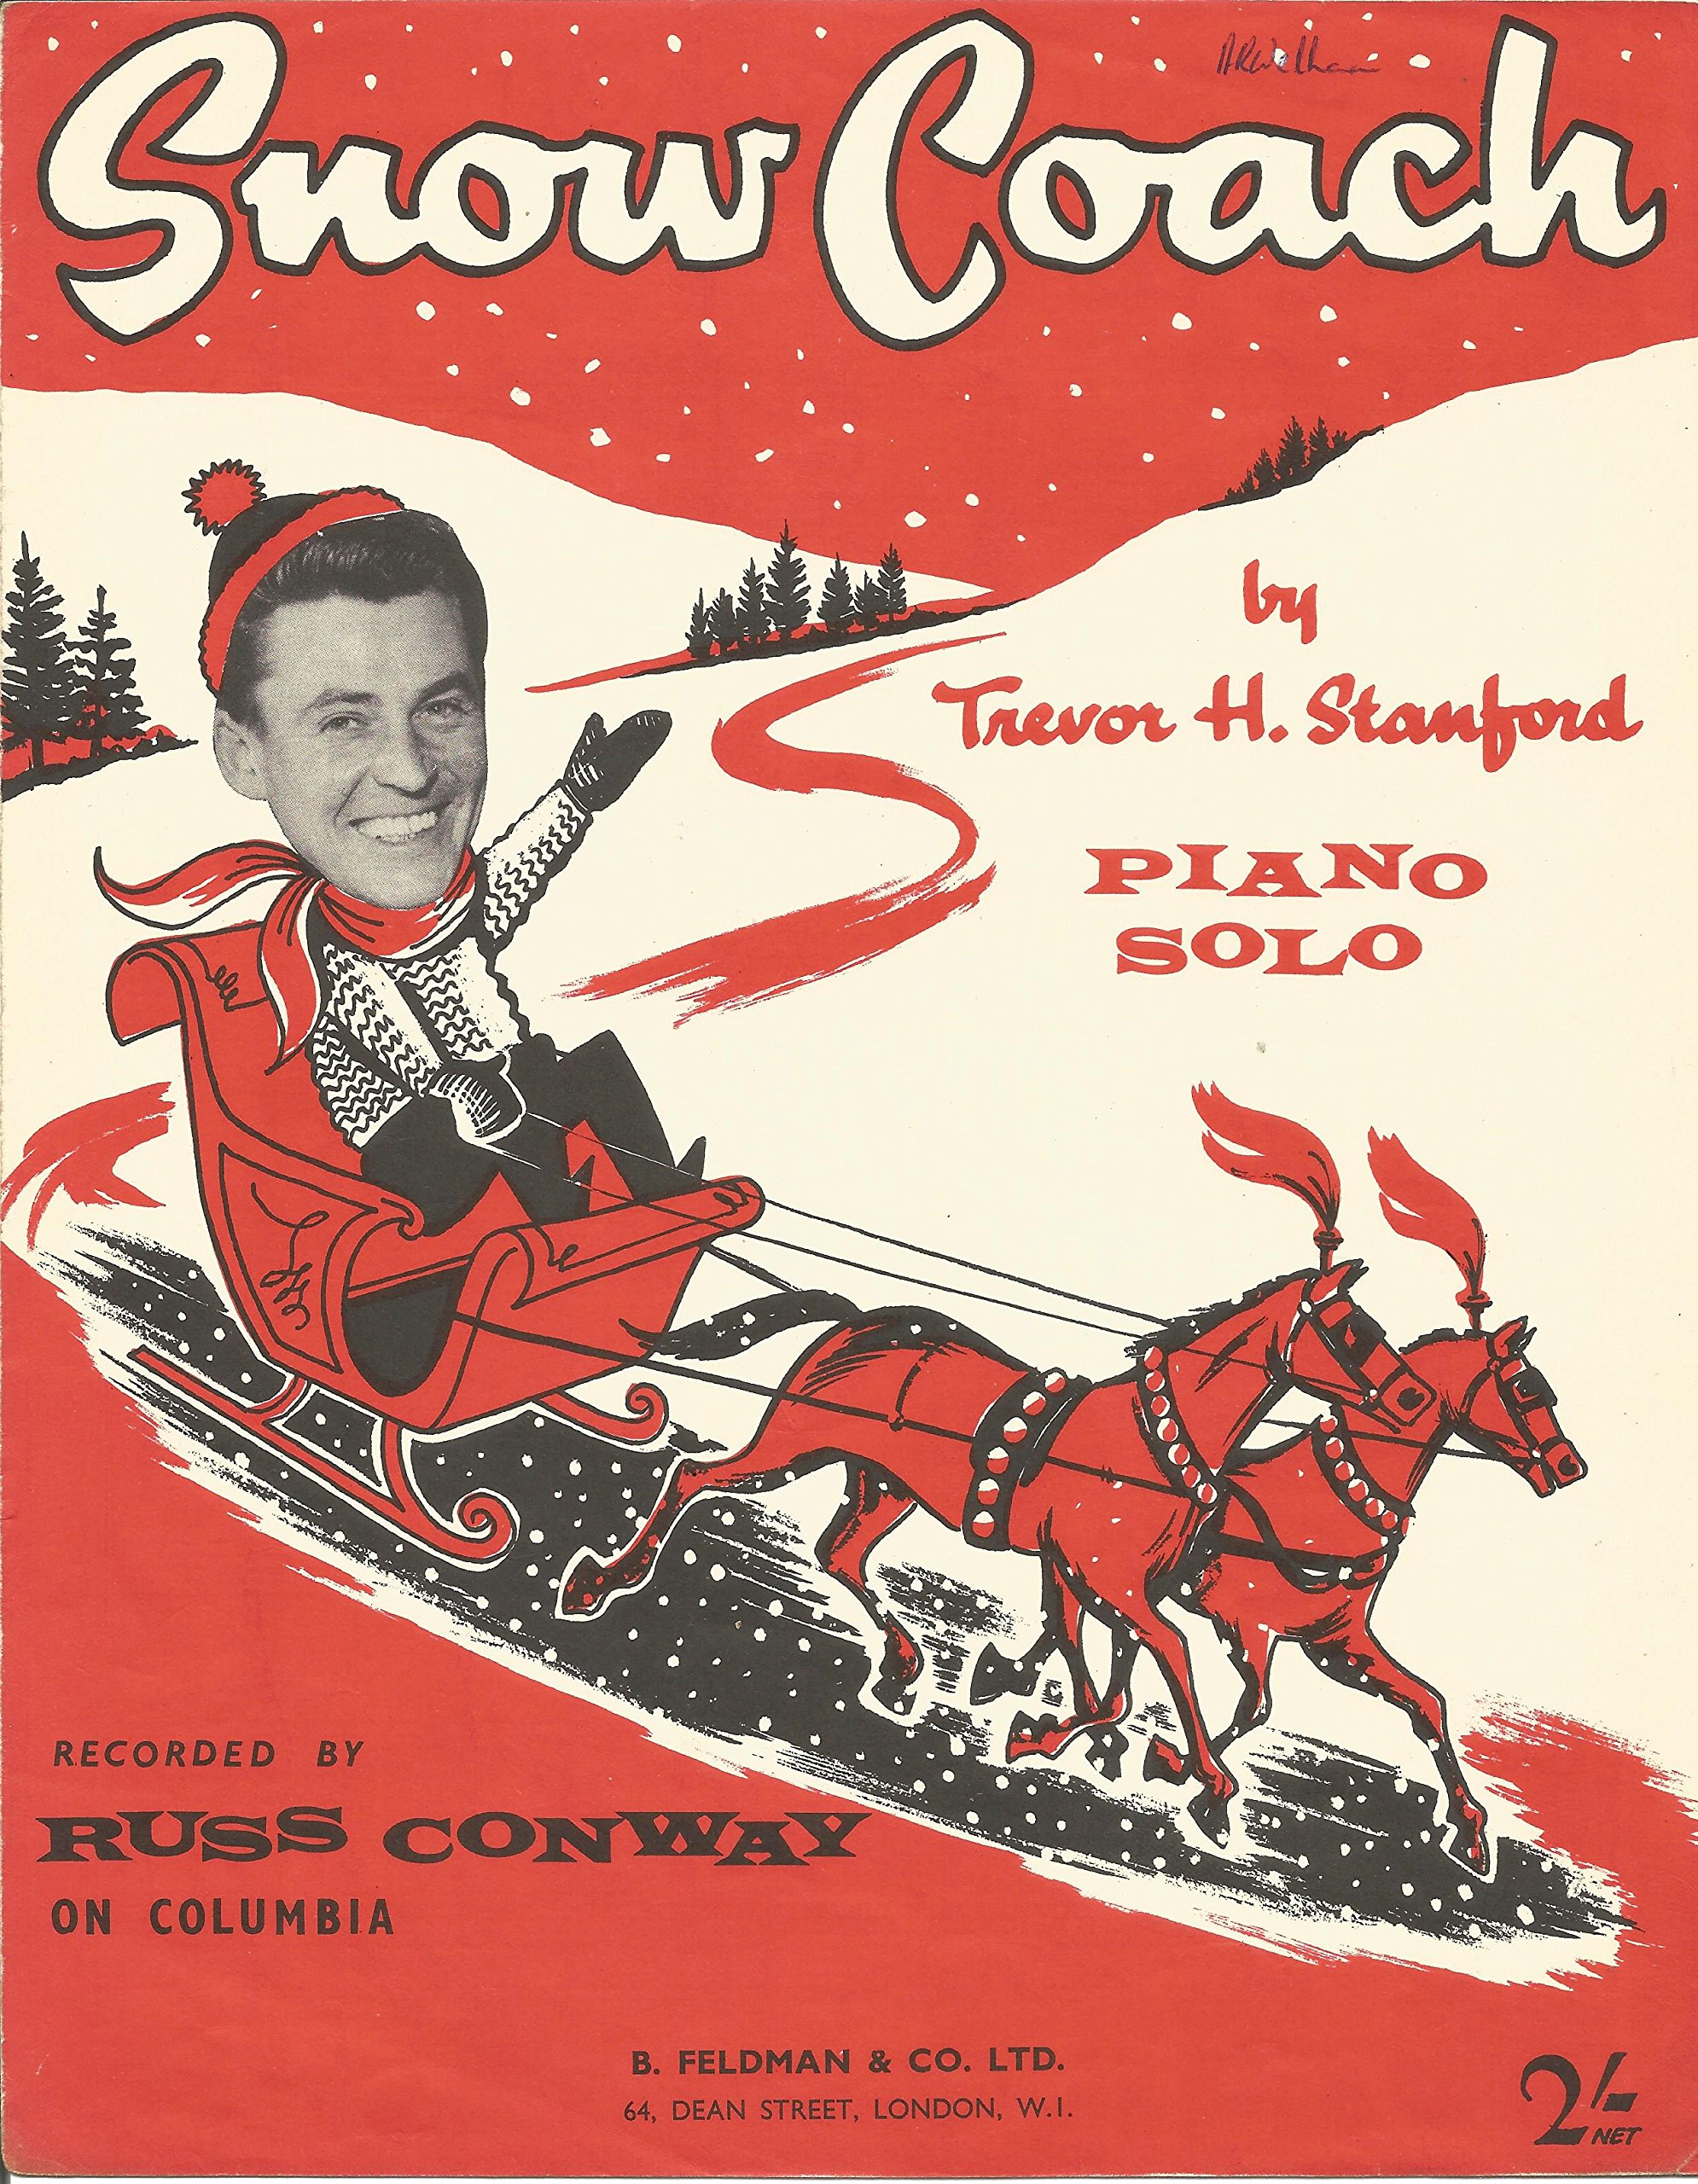 Sheet Music for Snow Coach by Russ Conway (1959).